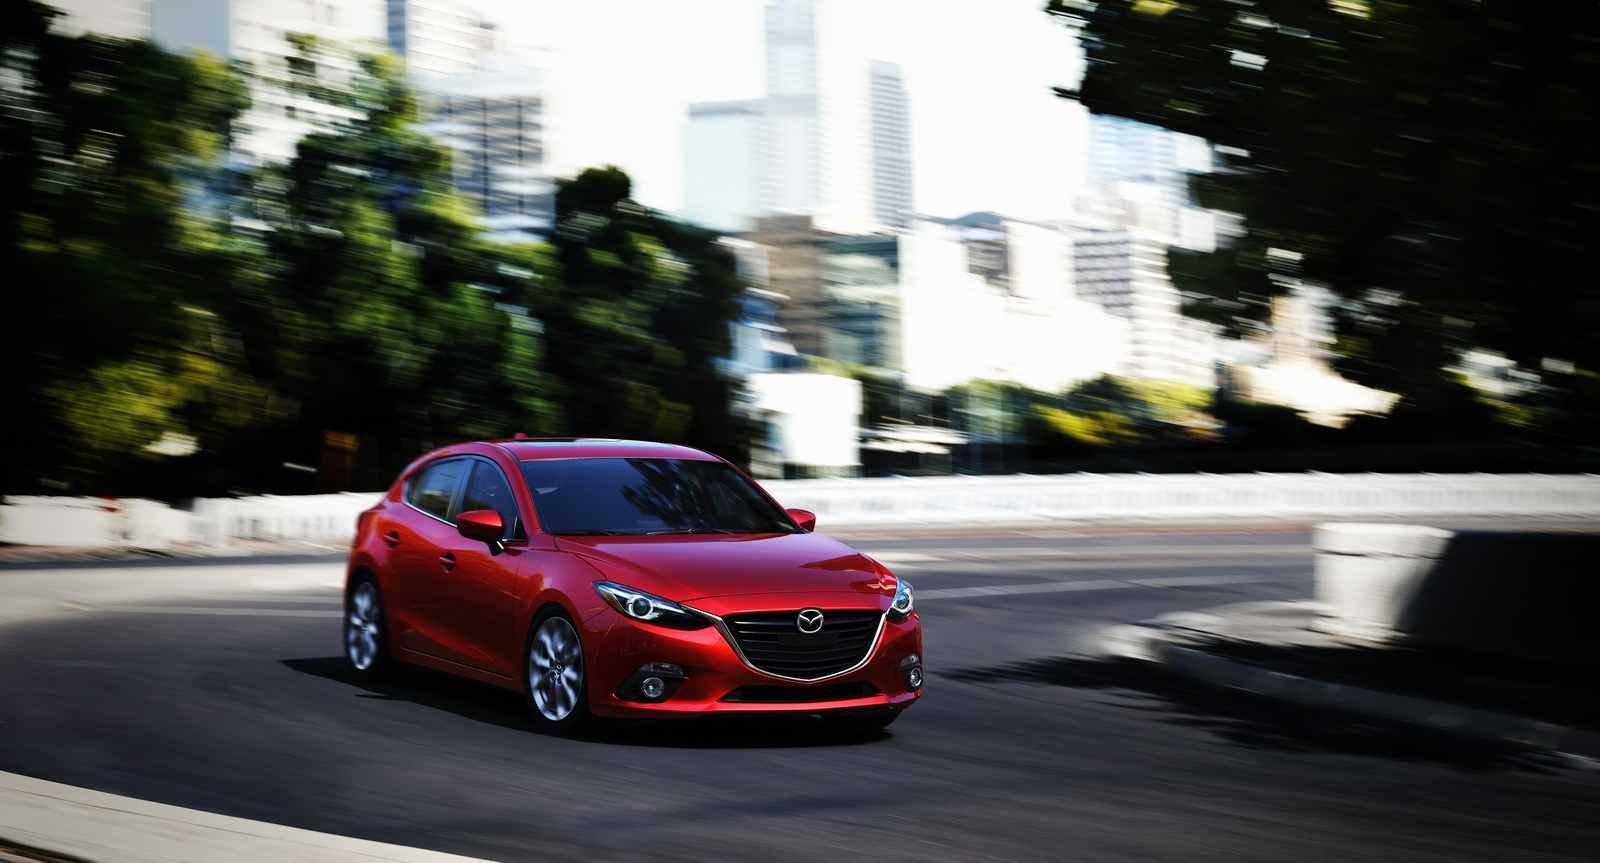 2014 Mazda 3: Ditches The Smile, Adds New Technology